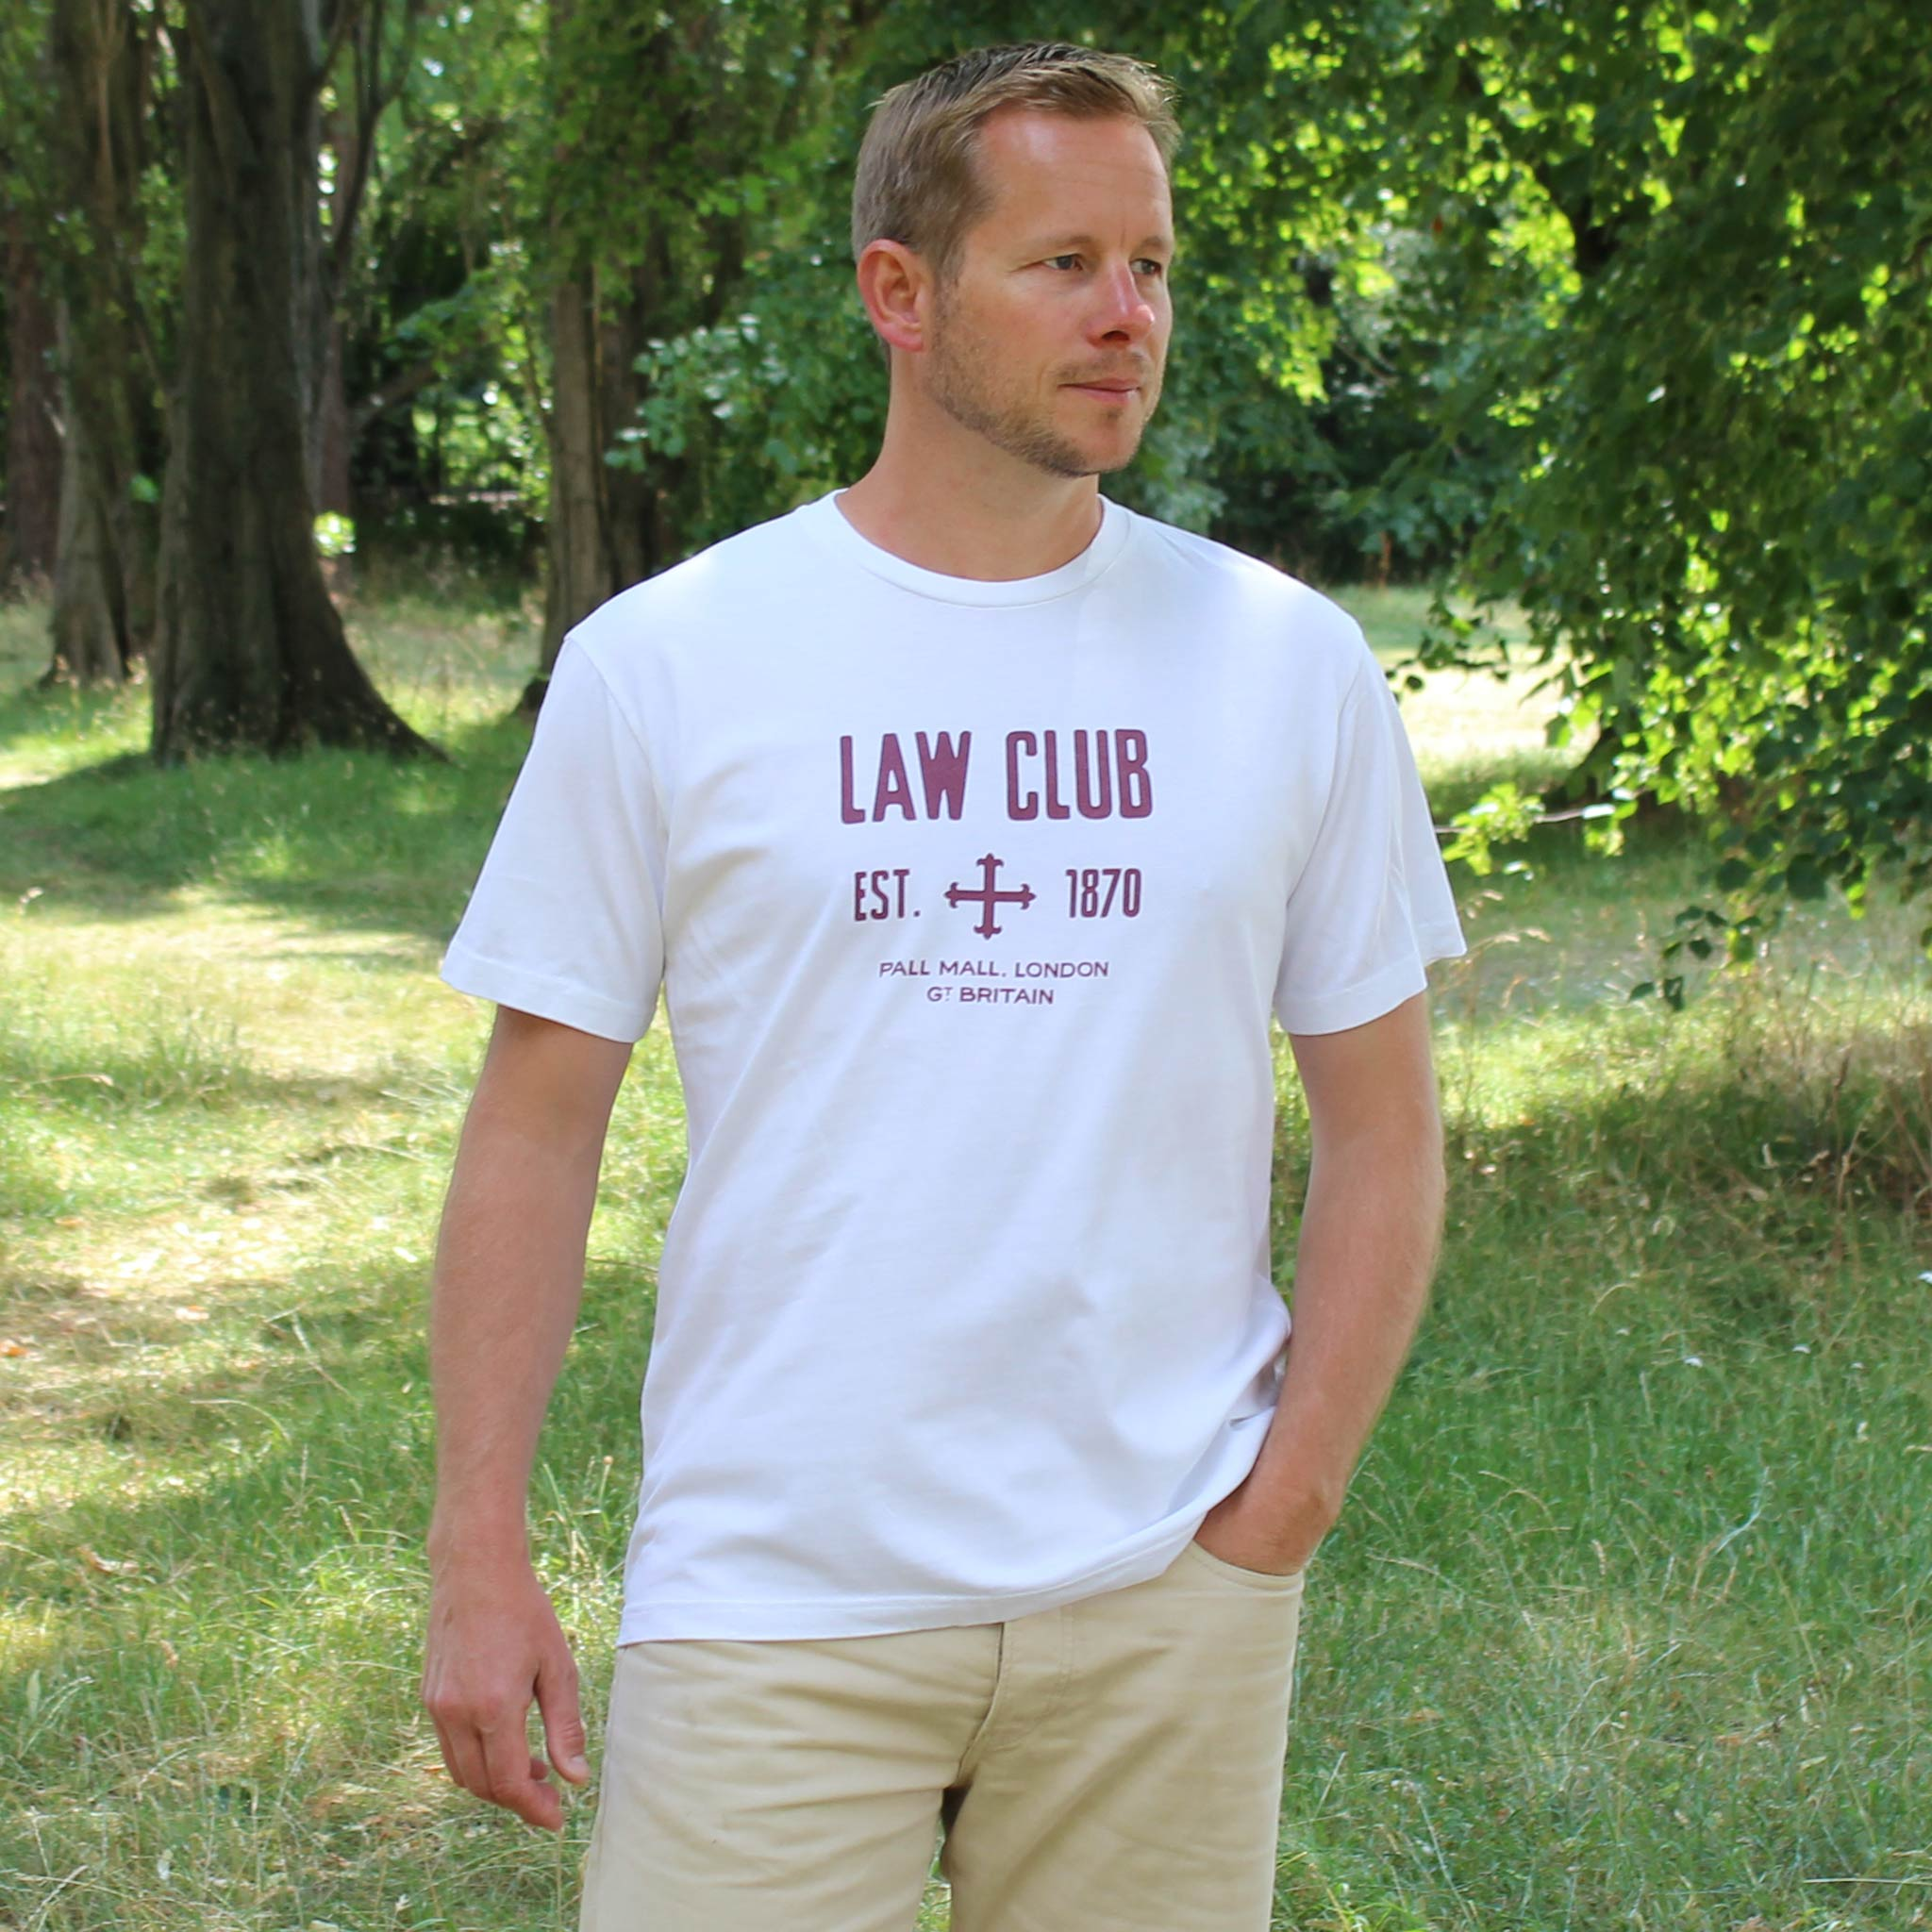 Law Club White T-shirt model